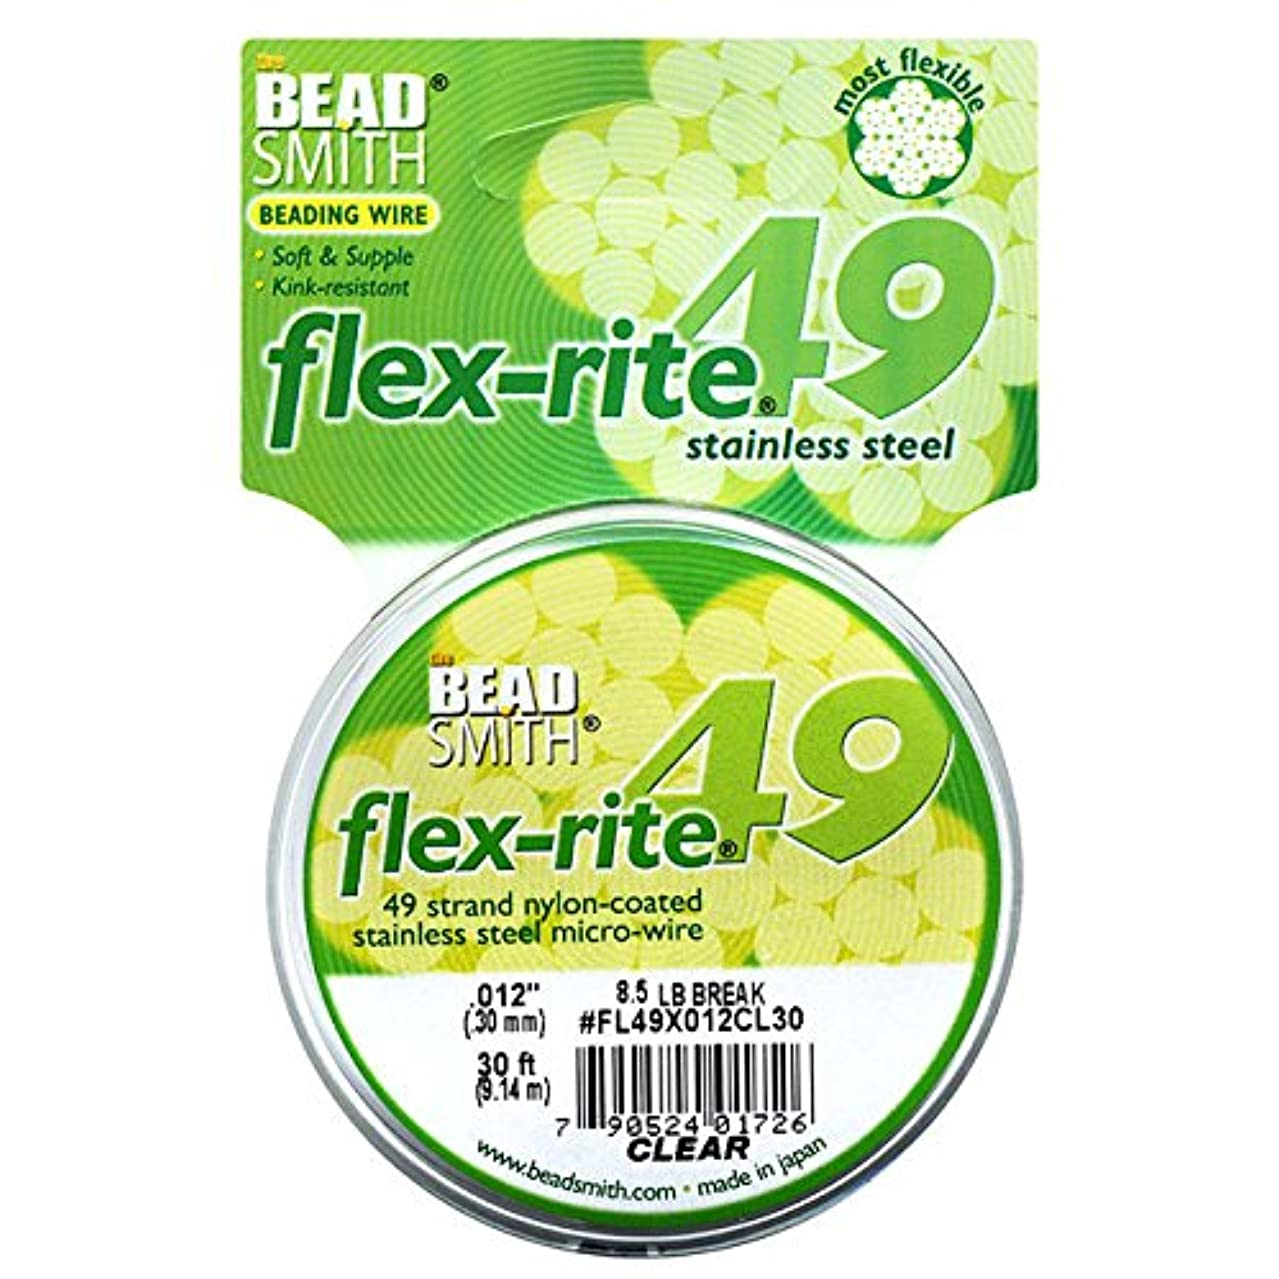 49 Strand Flex Rite Beading Stringing Wire .012 Inch 30 Feet Professional Nylon Coated Stainless Steel for Small Hole Beads 9 Lb Break ,